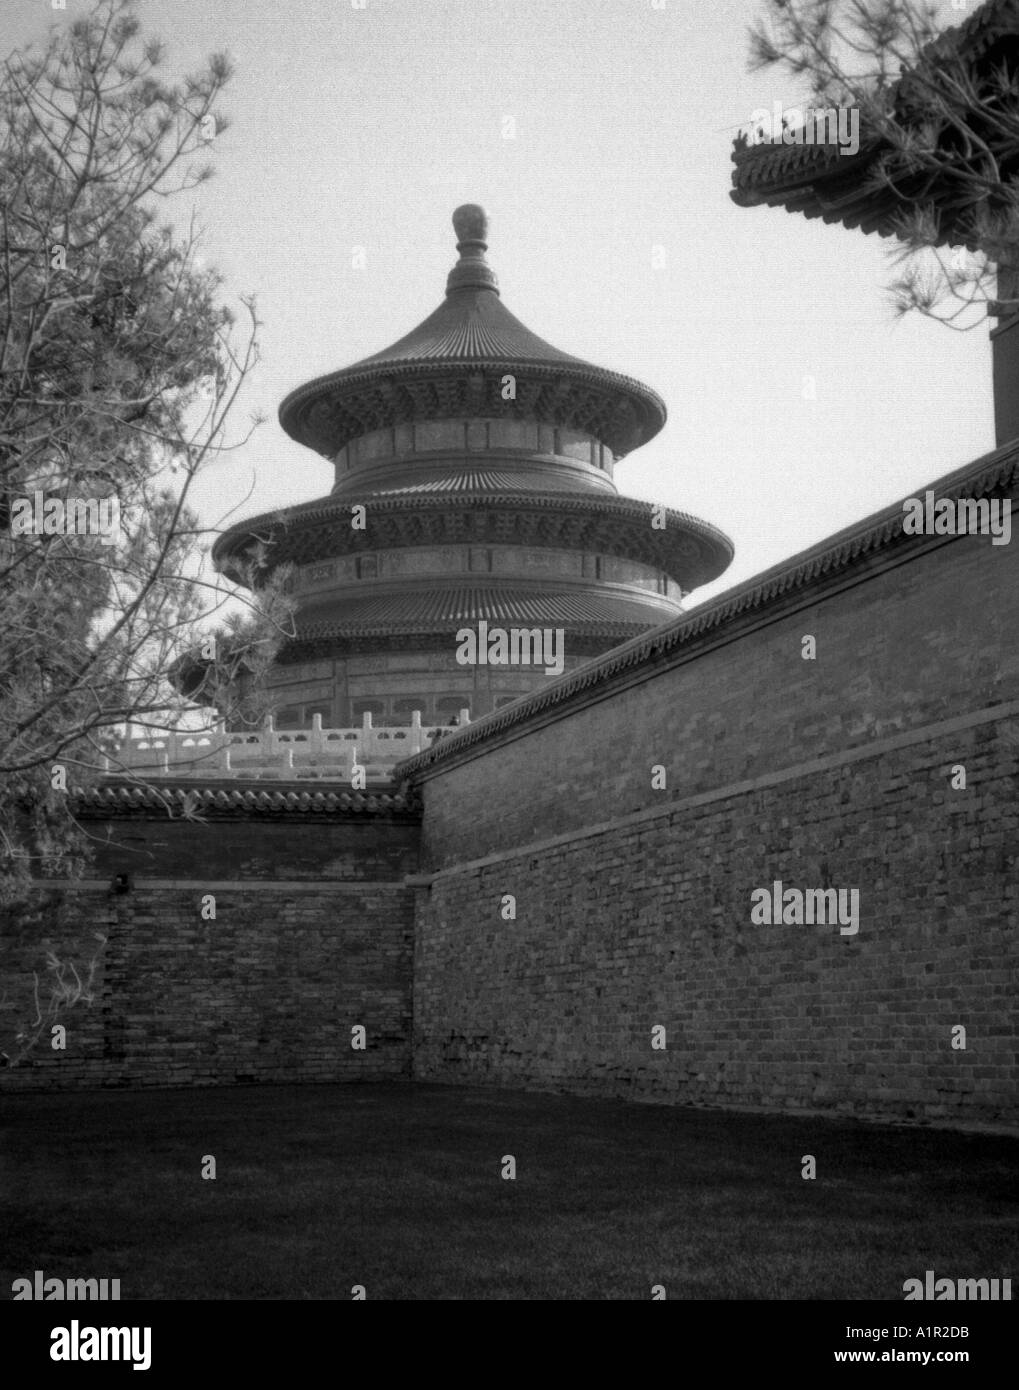 Hall of Prayer for Good Harvests Temple of Heaven UNESCO World Heritage Site Beijing Peking China Chinese Asian Asiatic Asia - Stock Image